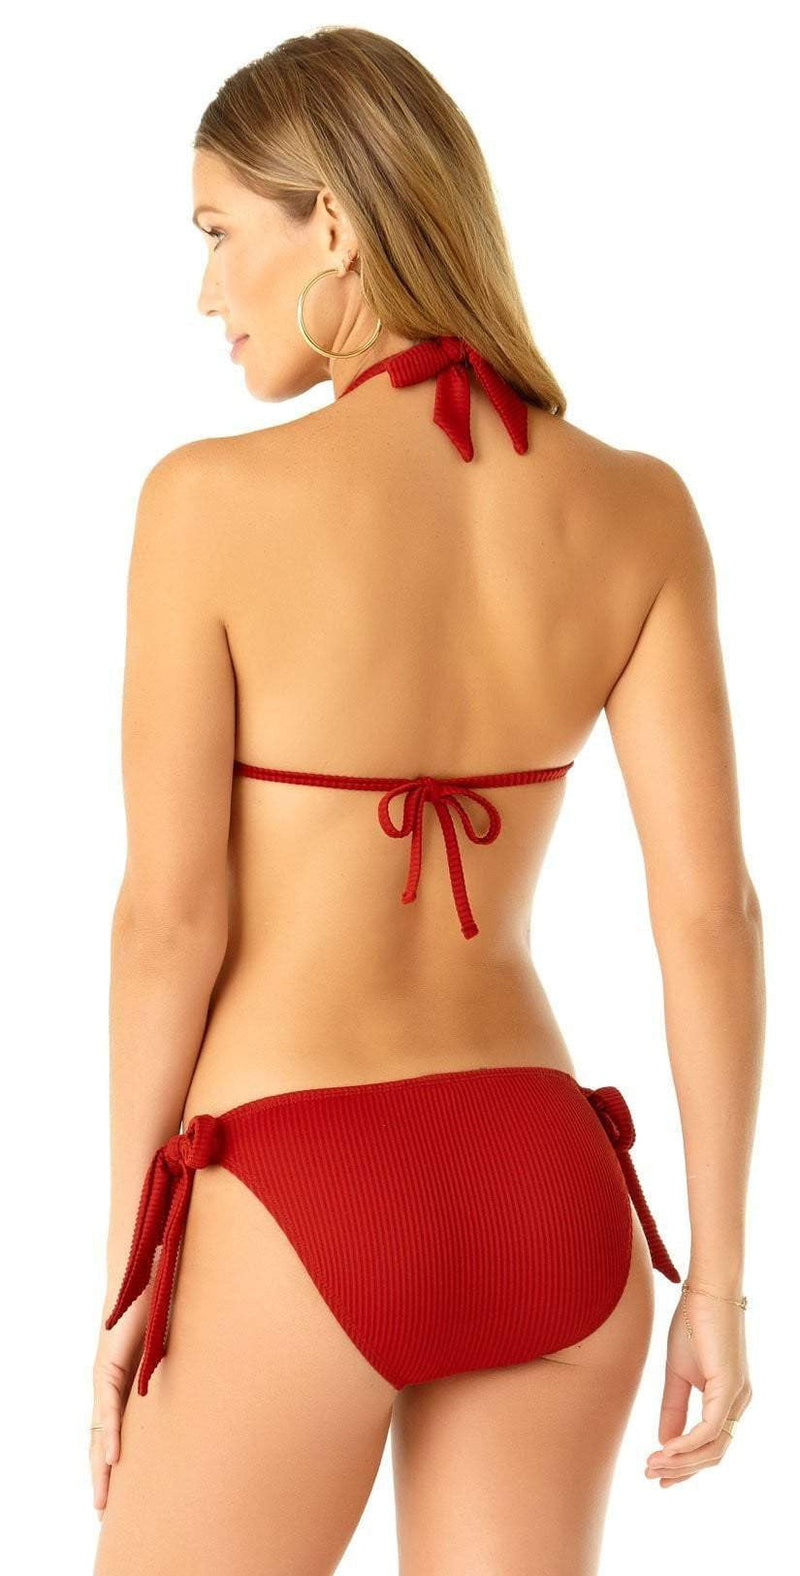 Anne Cole Studio Oh My Goddess Bandeau Bikini Top 19ST19302 RED: